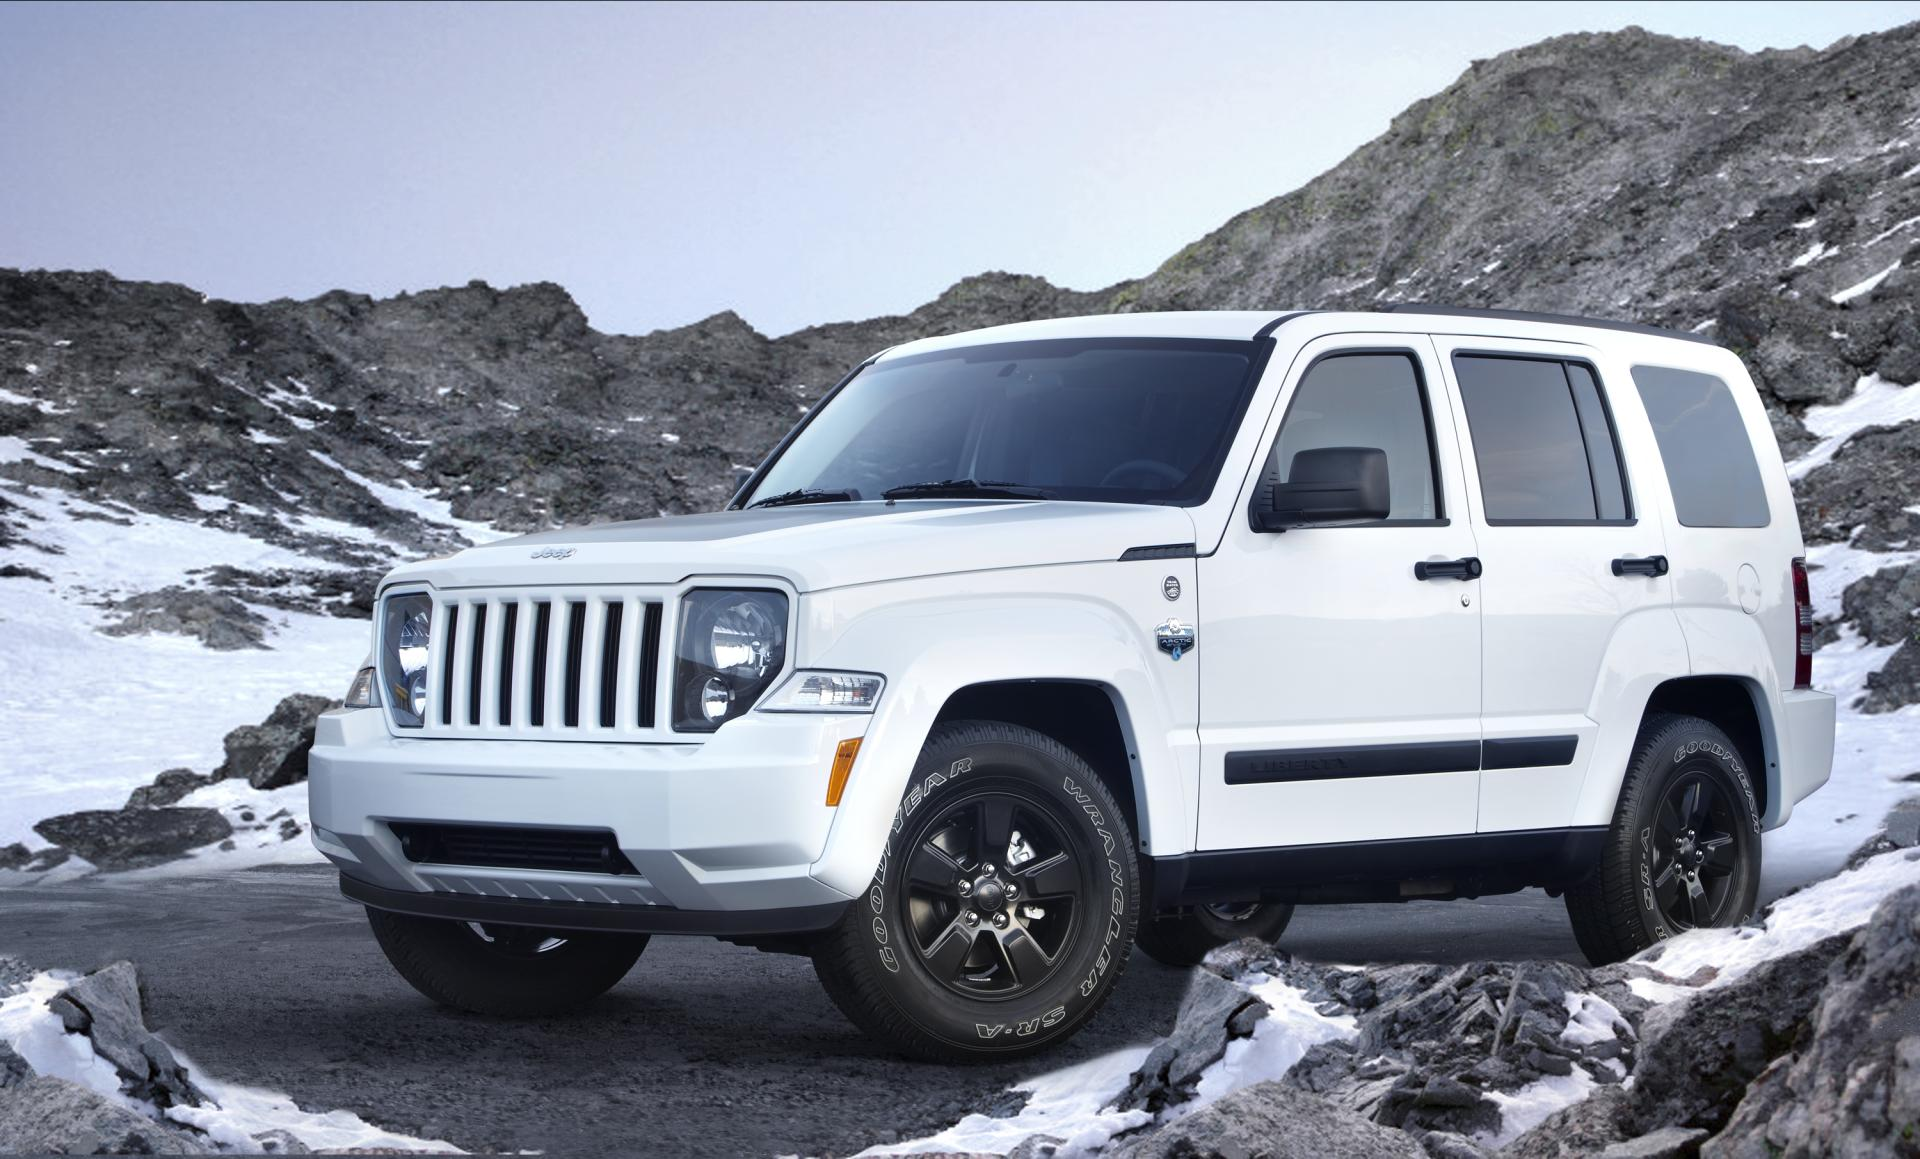 2012 Jeep Liberty Arctic News and Information